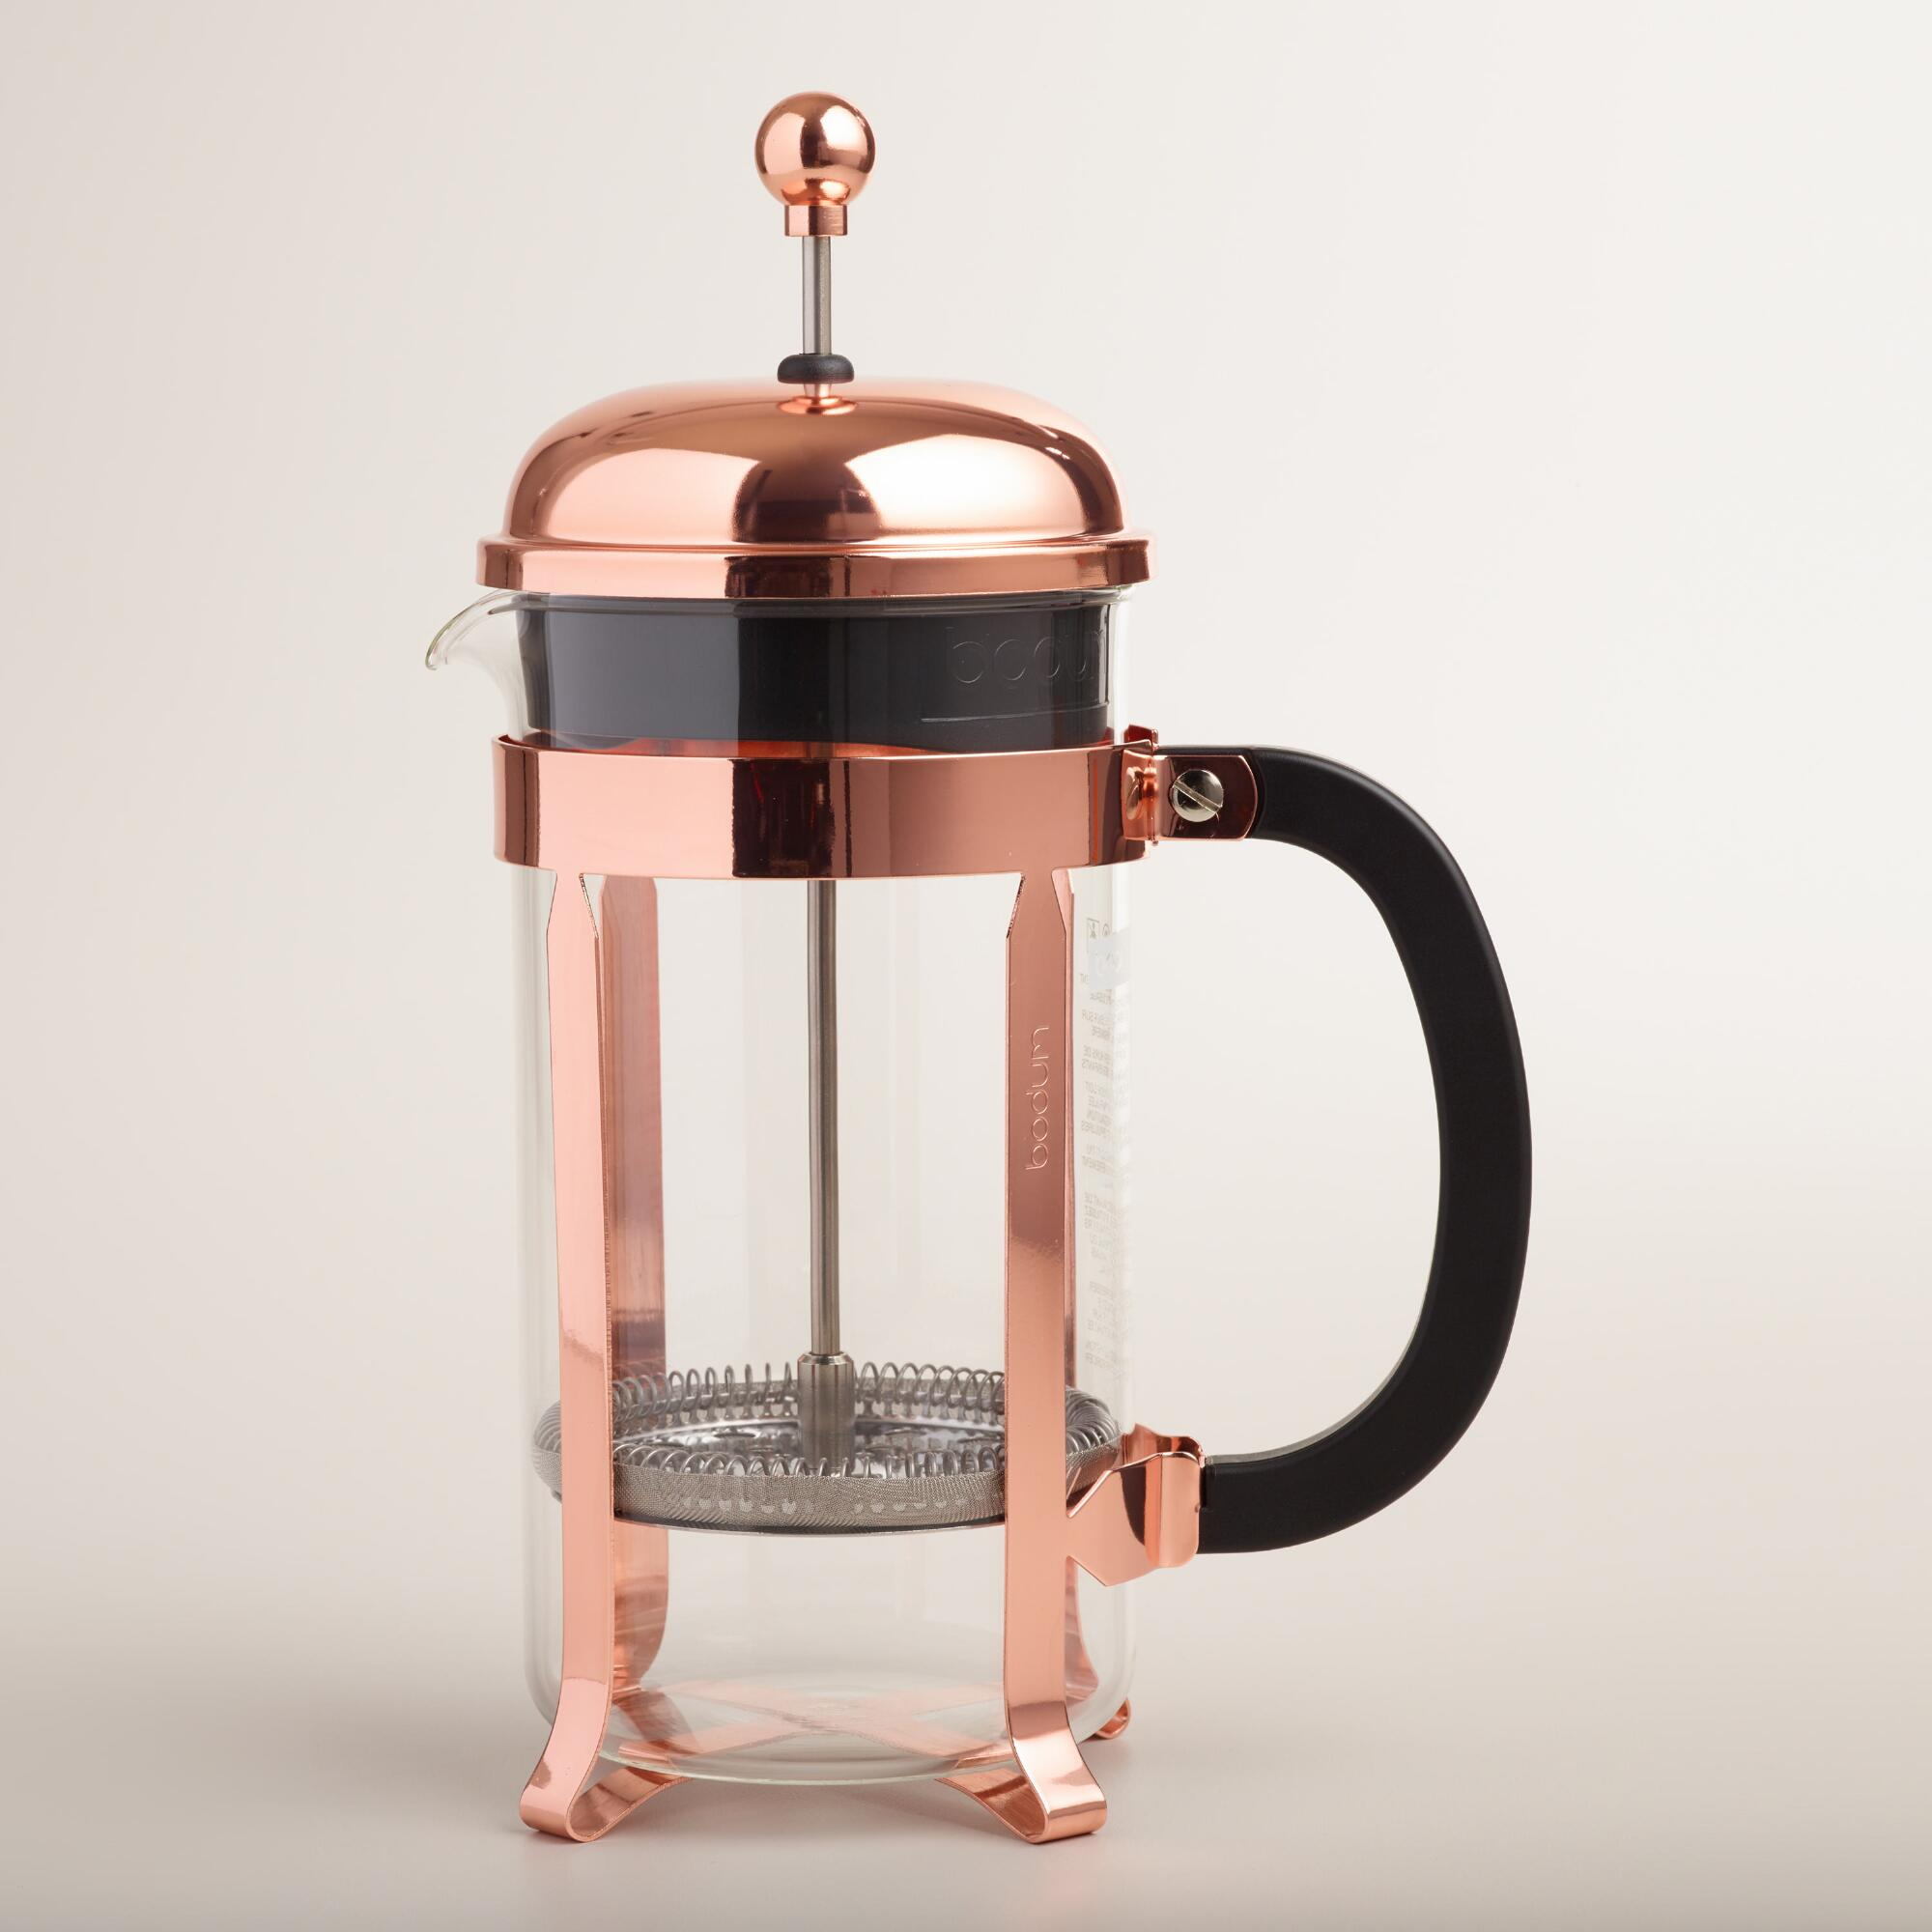 French Press Coffee Maker Images : Bodum Chambord Copper 8-Cup French Press Coffee Maker World Market